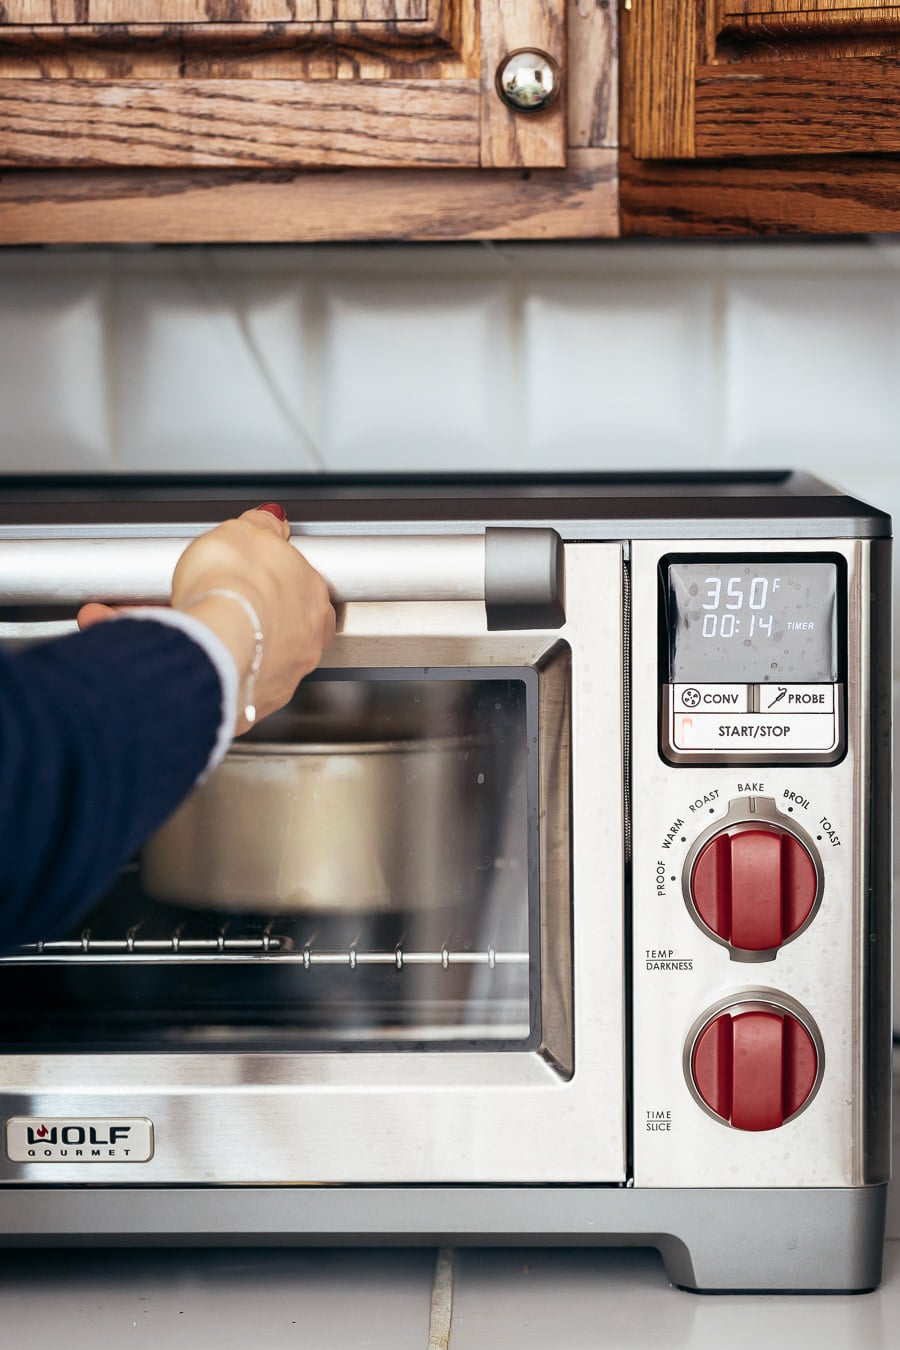 A woman is about to open an oven door with two gluten free gingnread cake inside.